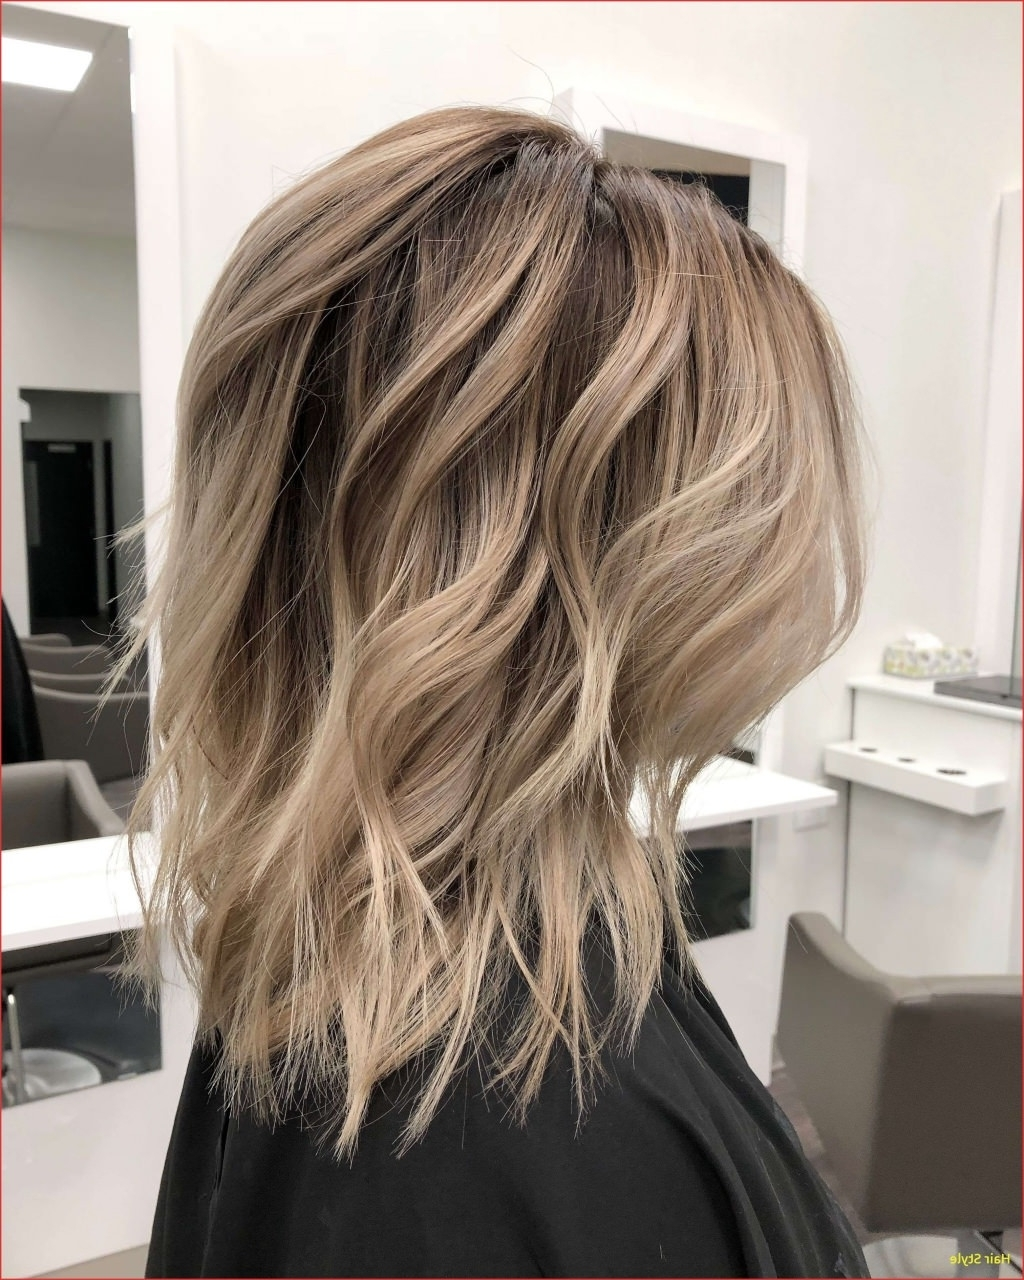 Blonde Hairstyles Medium Length New Medium Length Haircuts 30+ Cute Blonde Hairstyles For Medium Length Hair